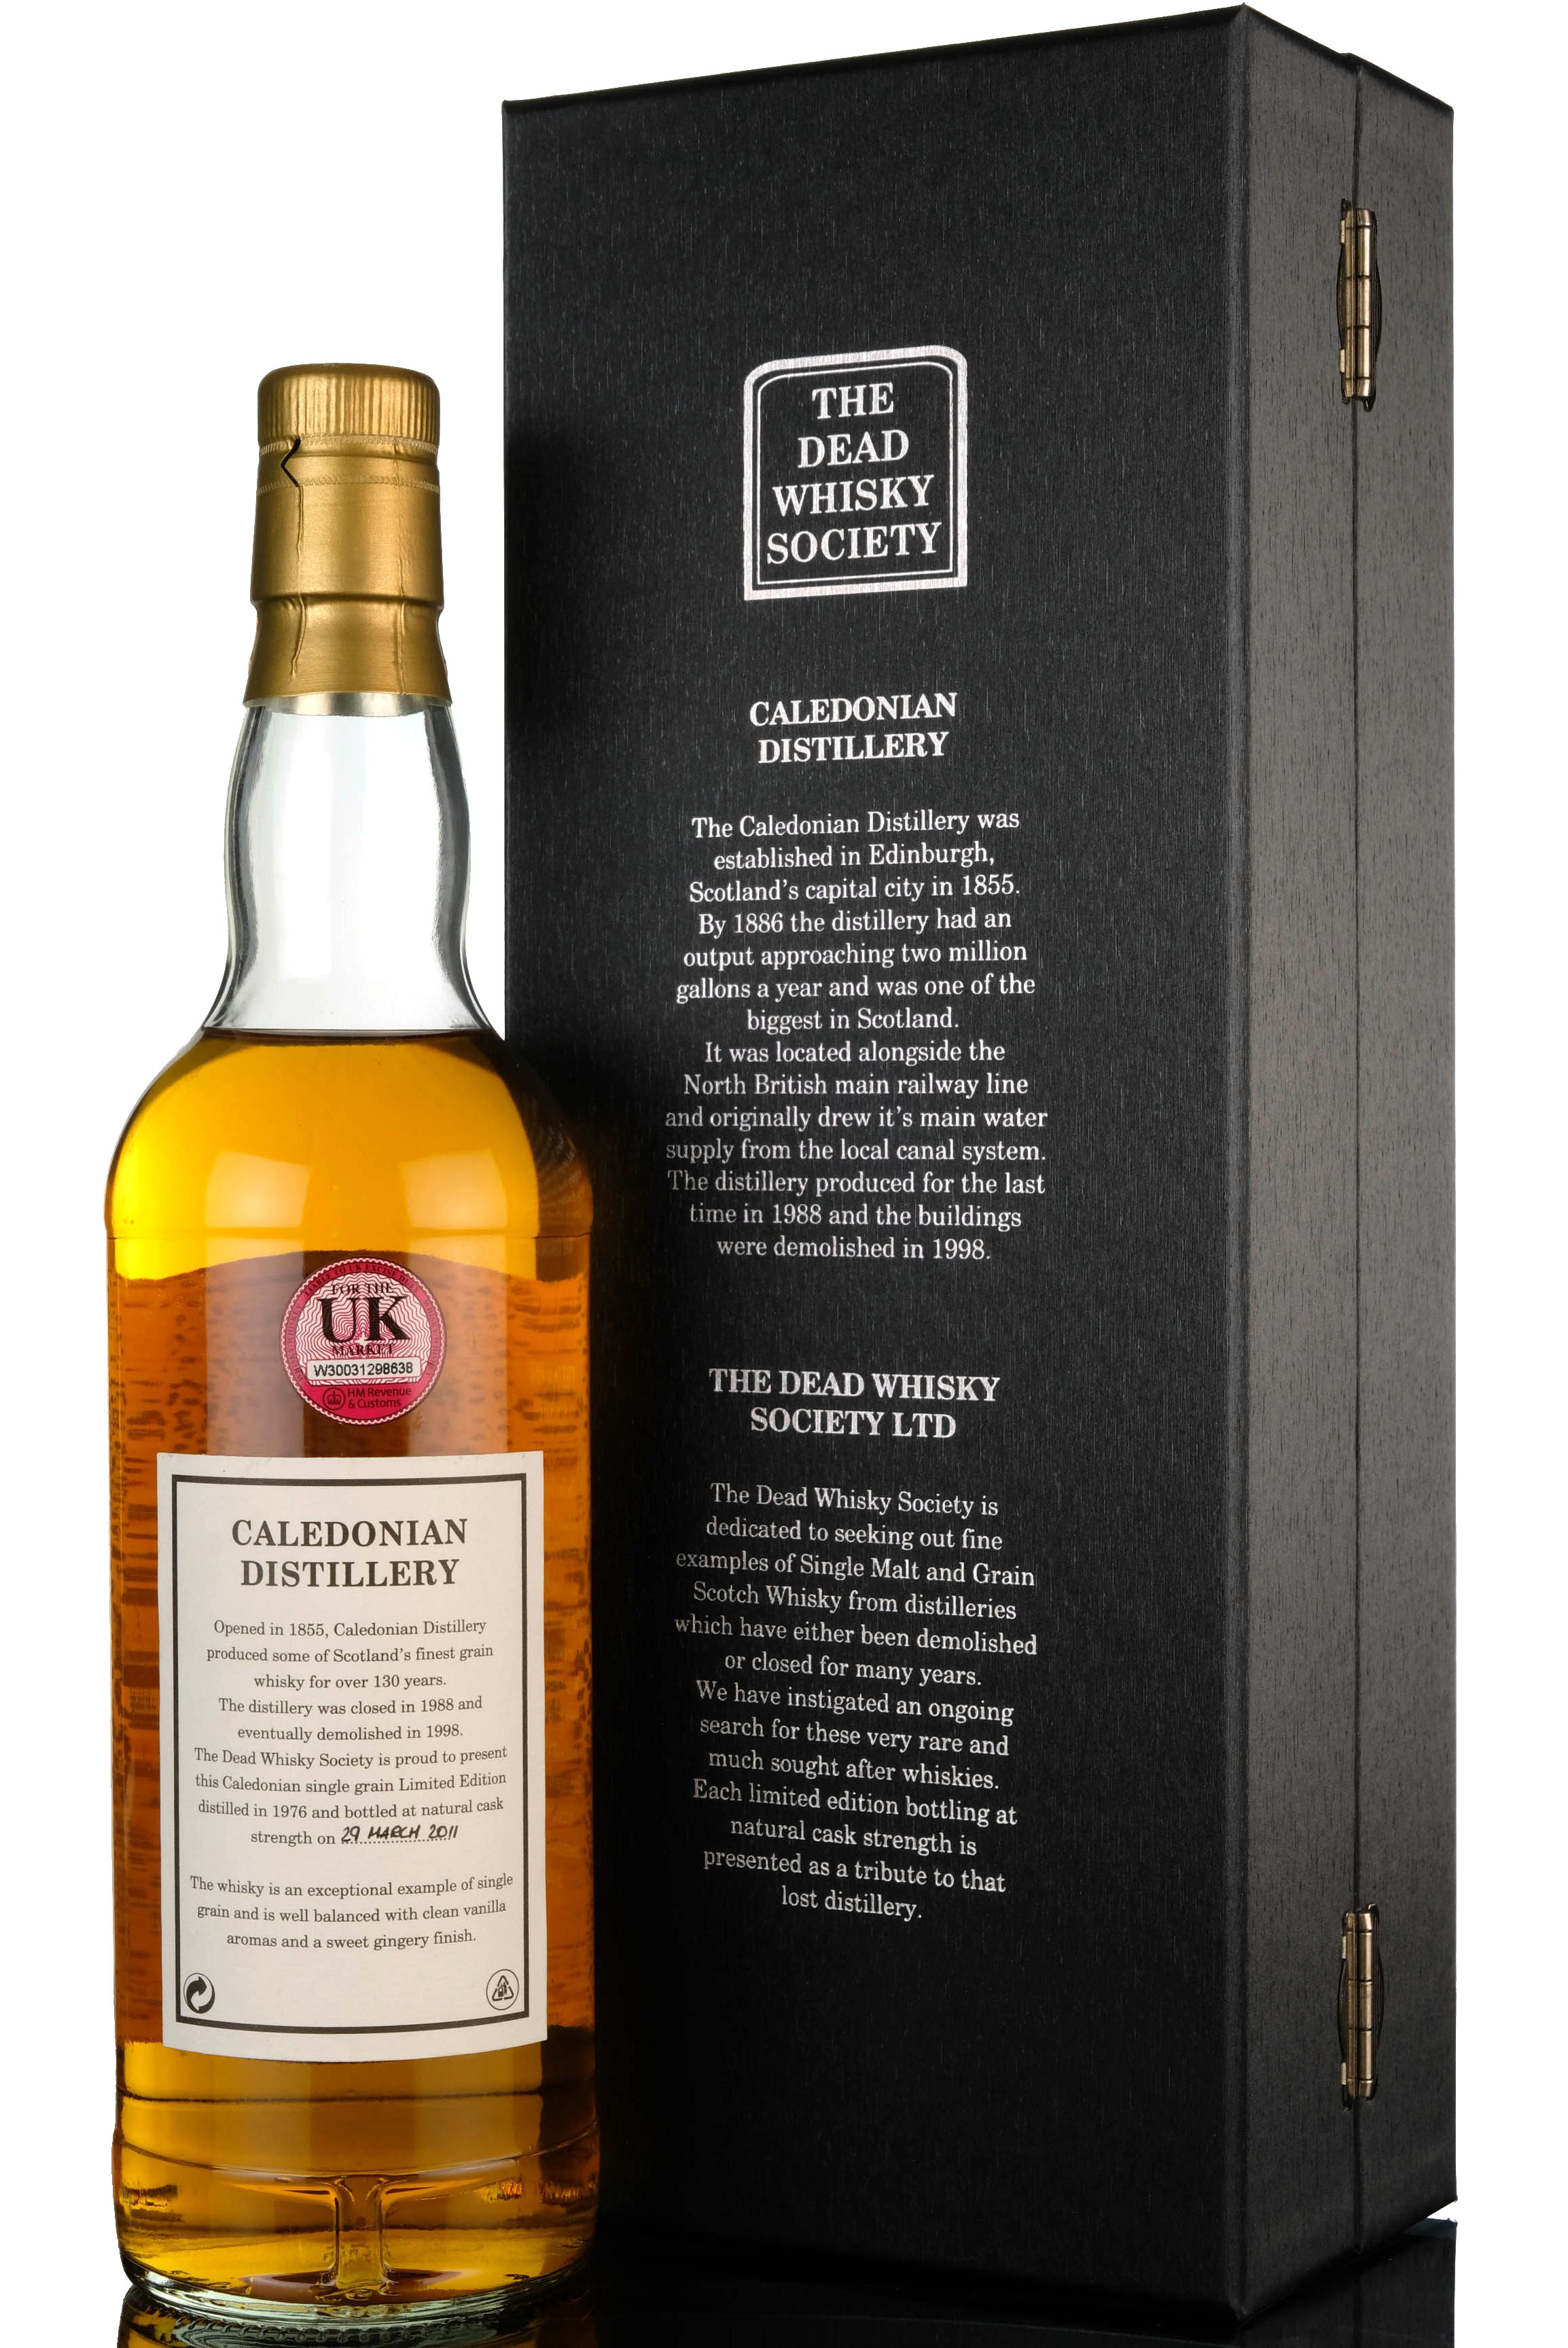 caledonian 1976-2011 - 34 year old - dead whisky society